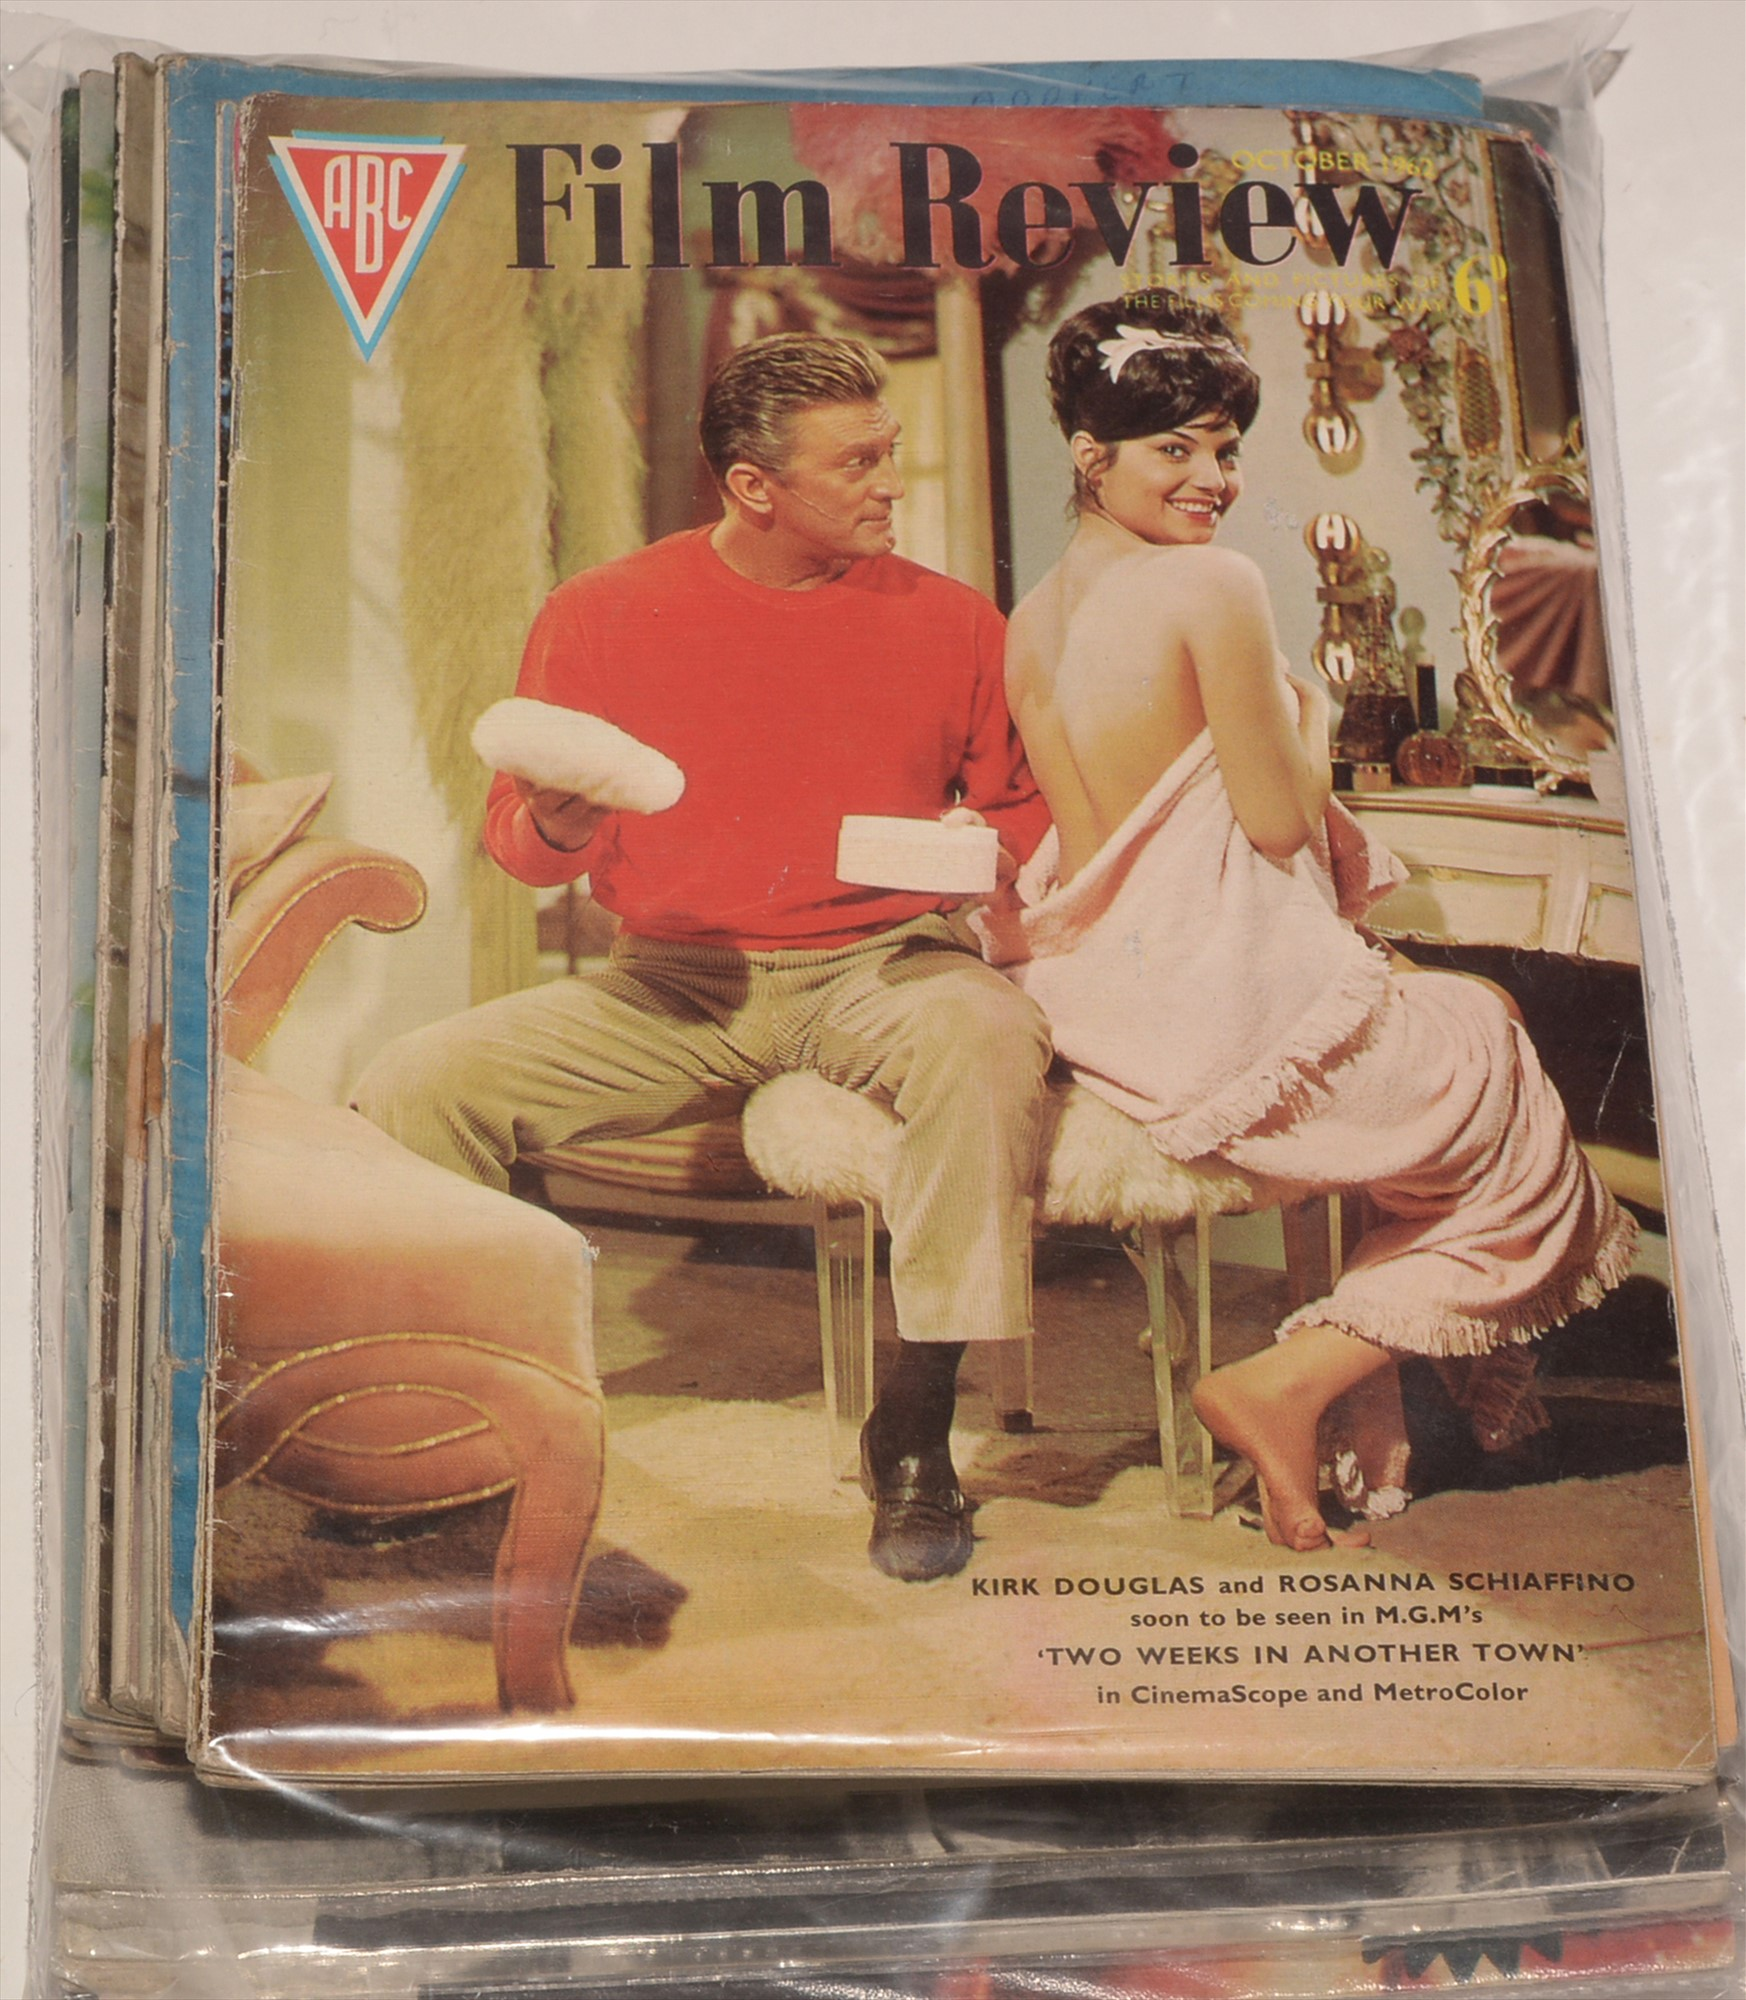 Film Review sundry 1960's issues and other movie-related publications